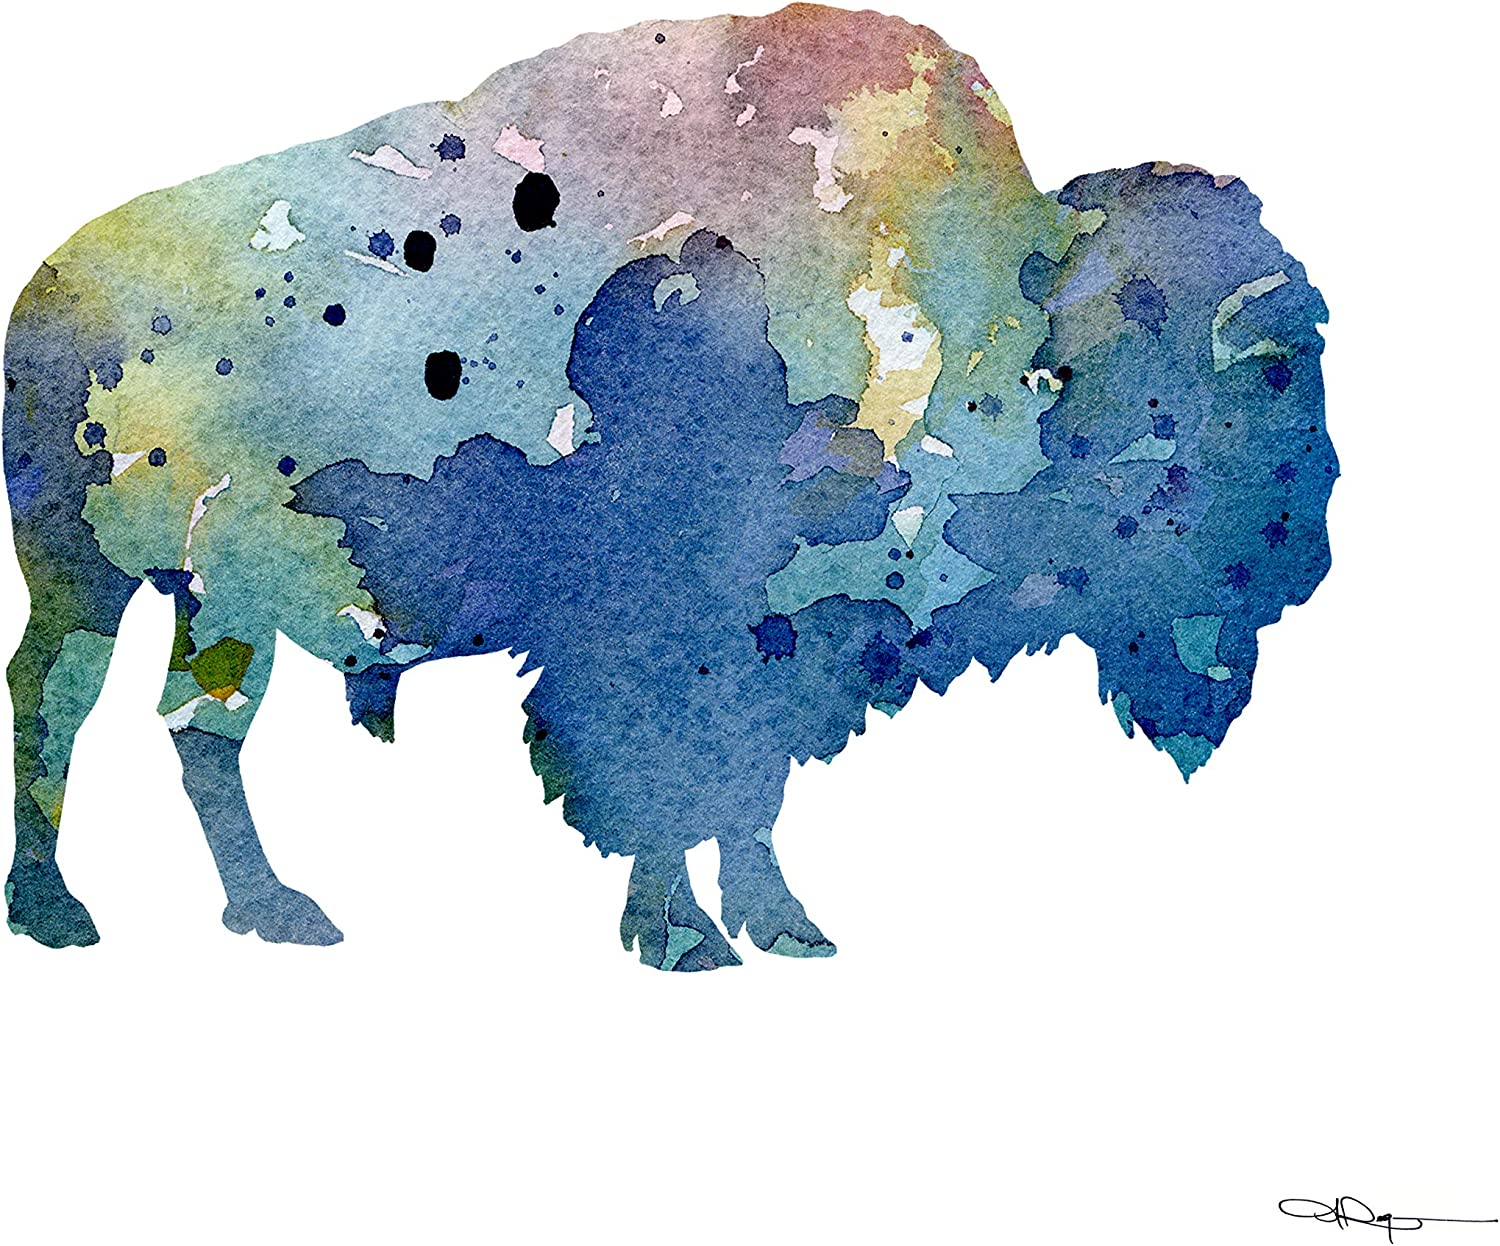 Buffalo Abstract Watercolor Painting Bison Art Print by Artist DJ Rogers